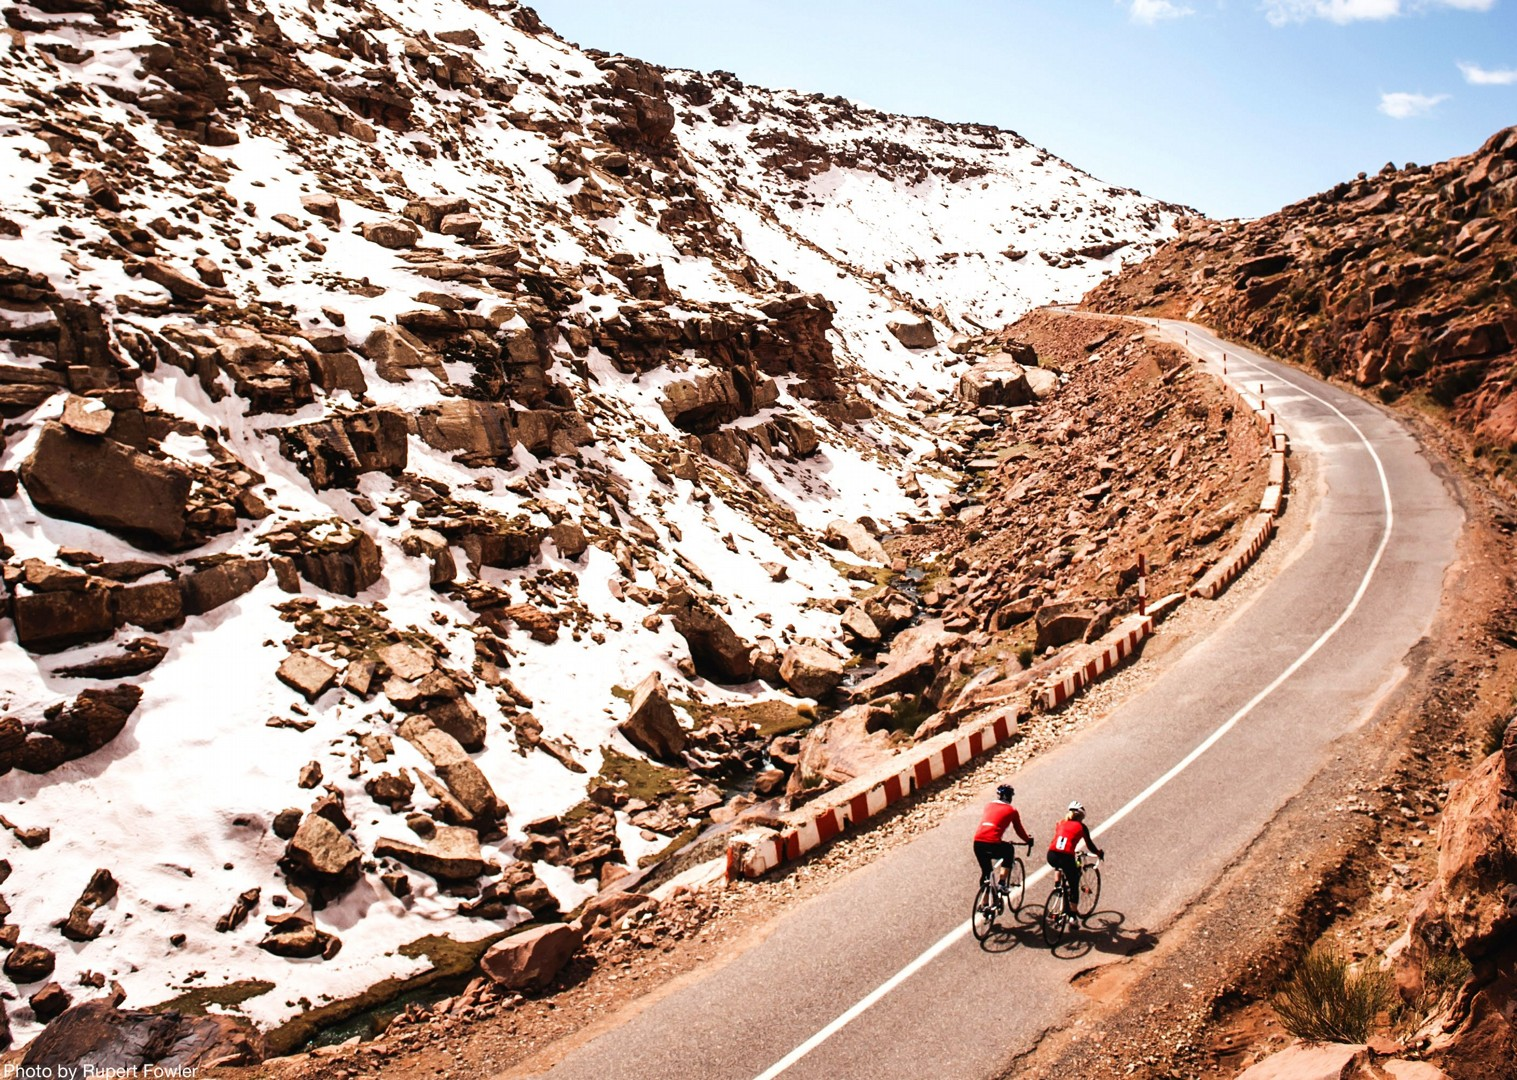 snowy-mountains-anti-atlas-morocco-cycling-road.jpg - Morocco - Road Atlas - Road Cycling